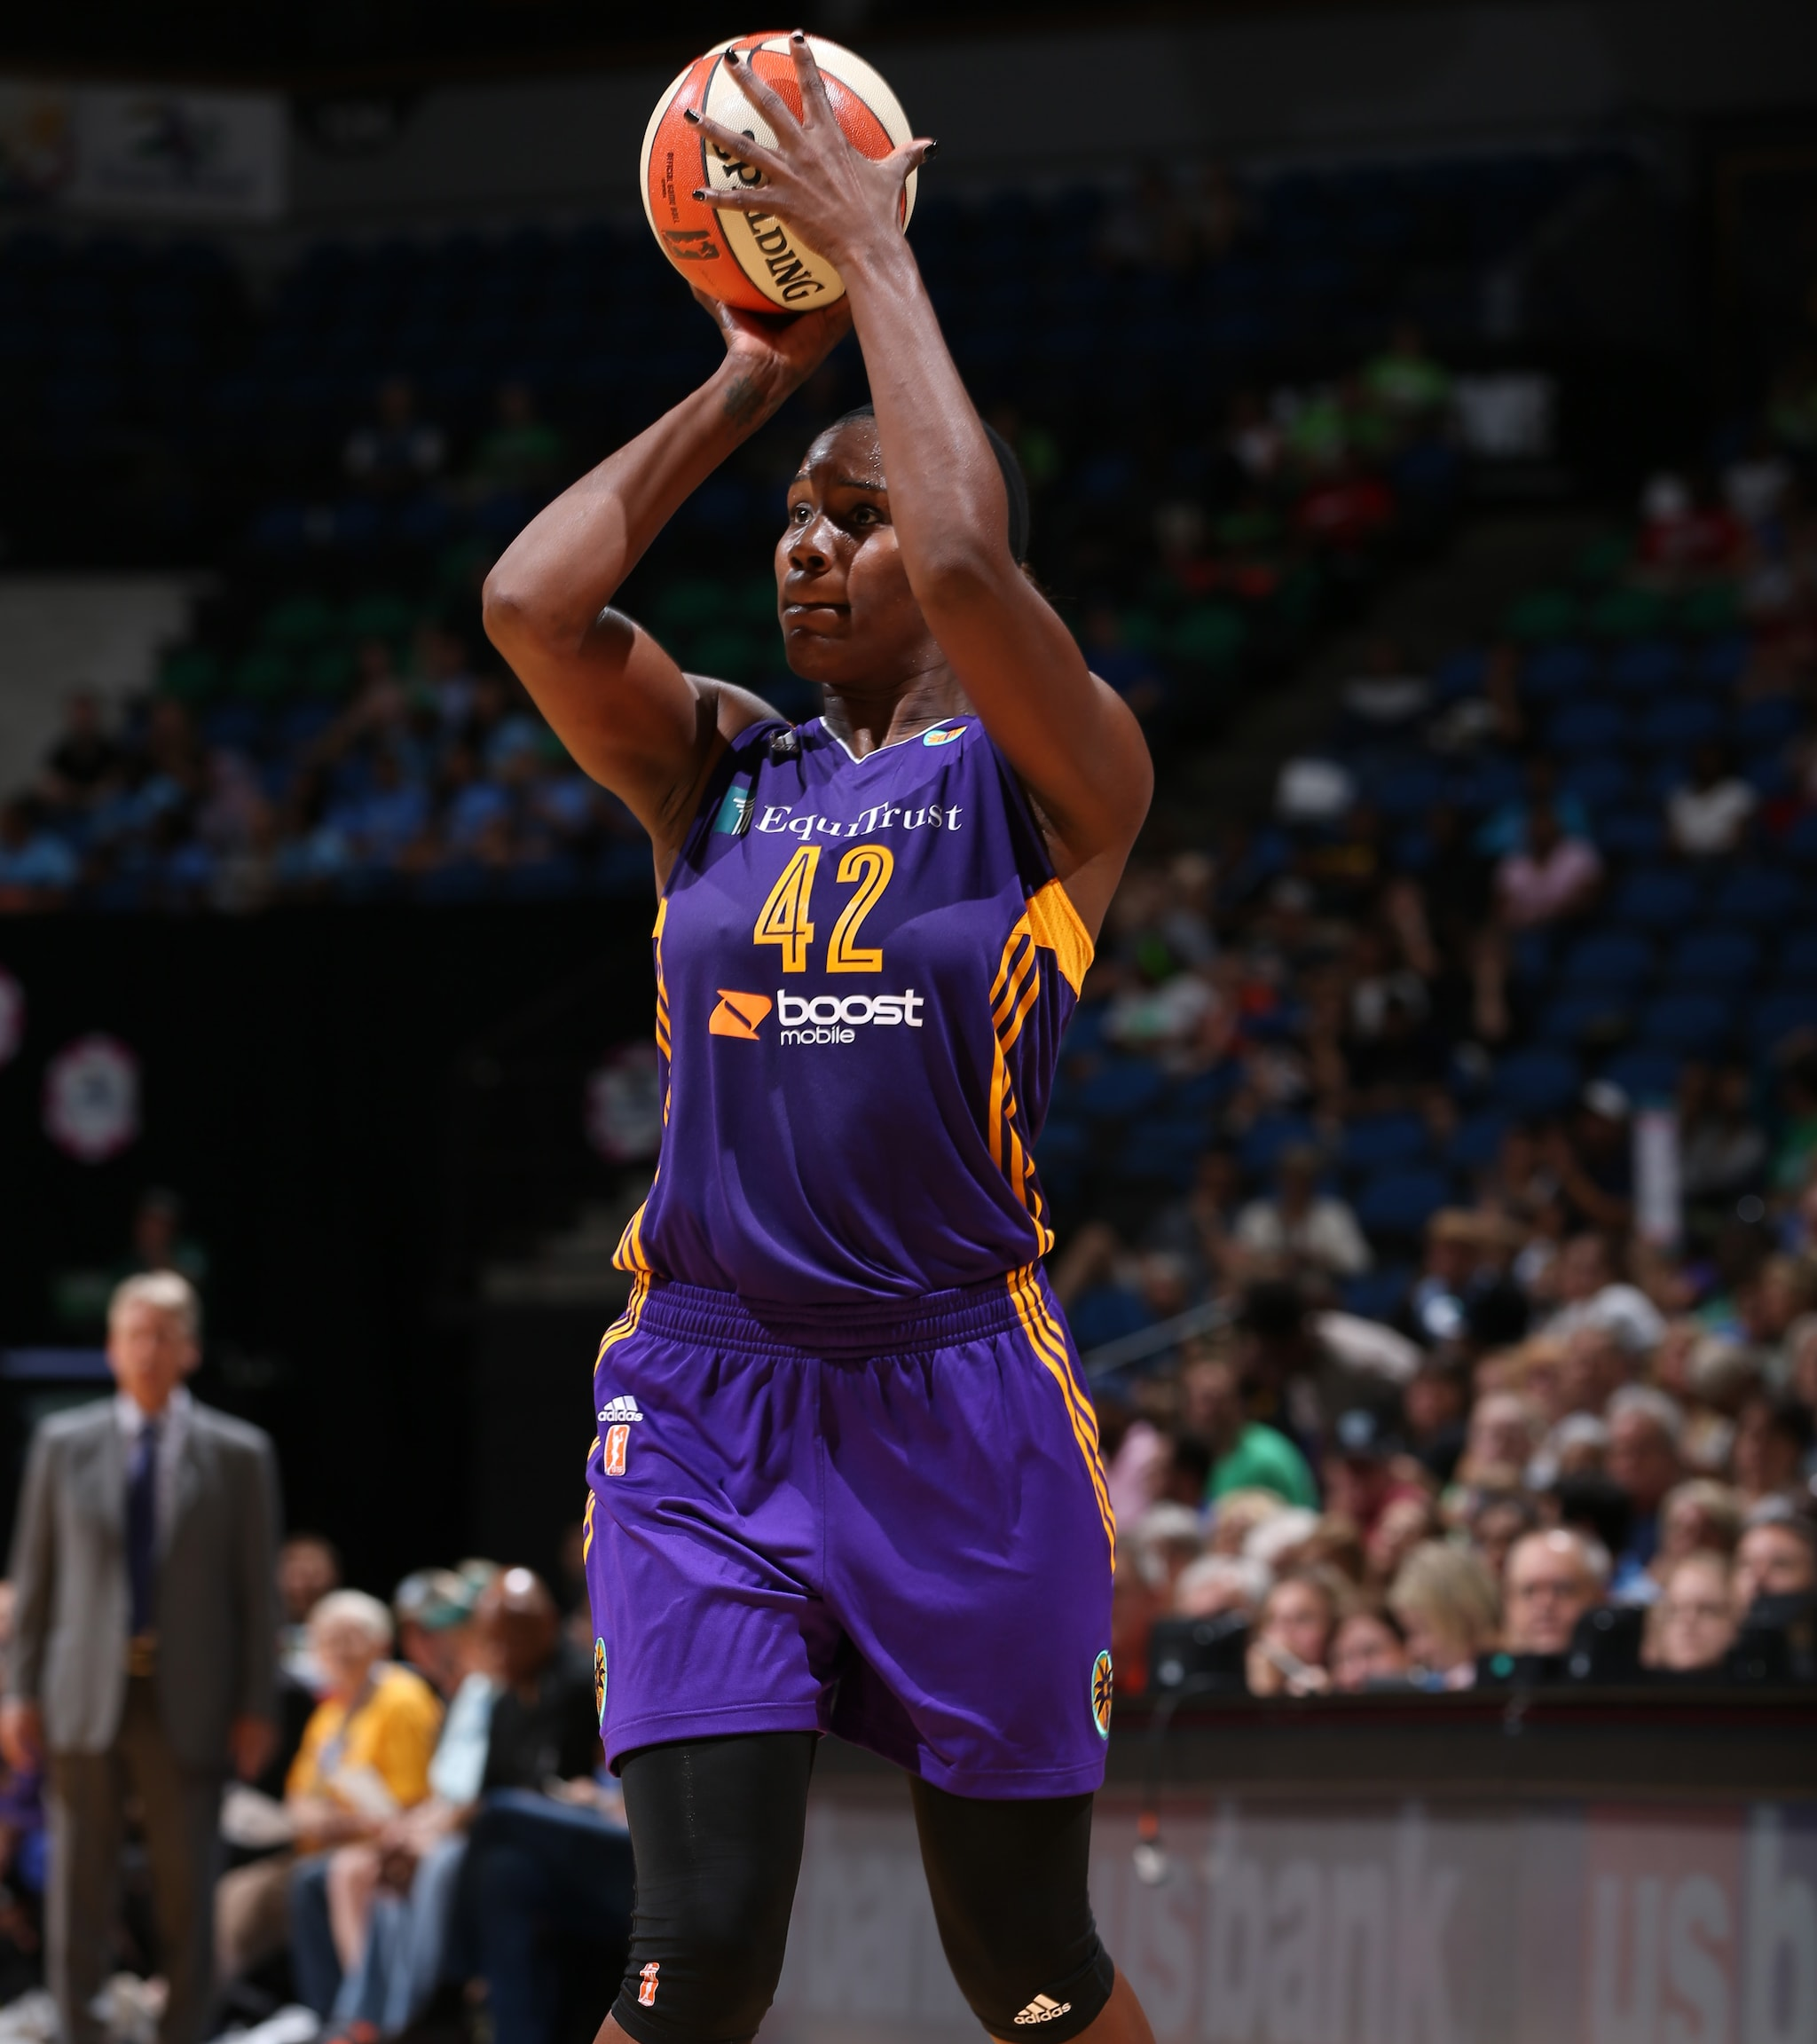 As good as the Minnesota Lynx played defensively, they could not find an answer for Sparks center Jantel Lavender. Lavender finished with 15 points on 7-of-10 shooting and grabbed 10 rebounds as well.